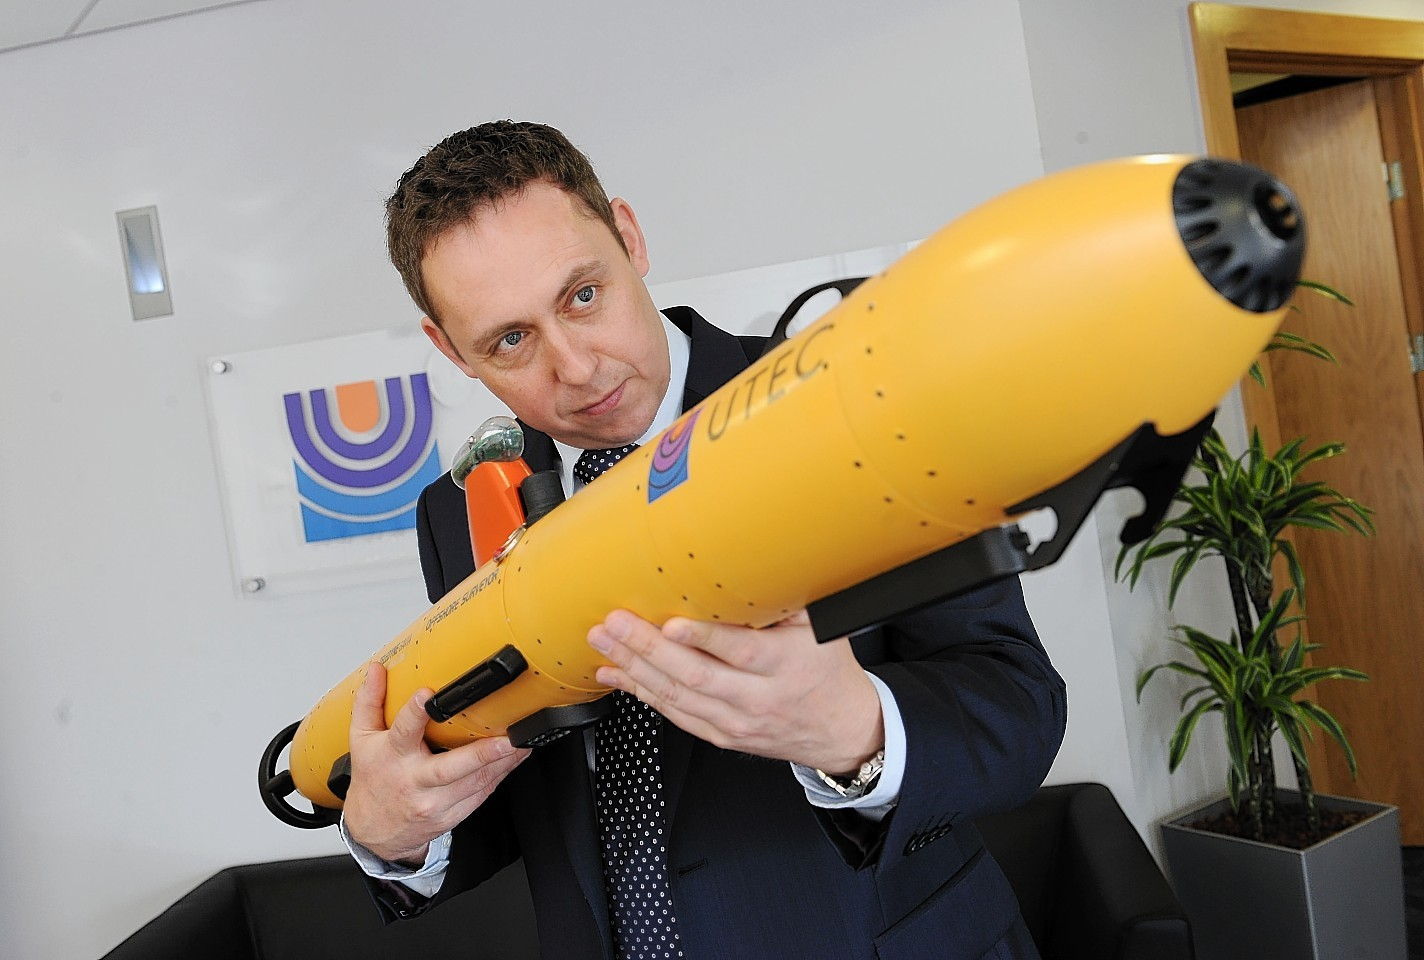 Utec's Kevin McBarron with a scale model of the company's autonomous underwater vehicle technology